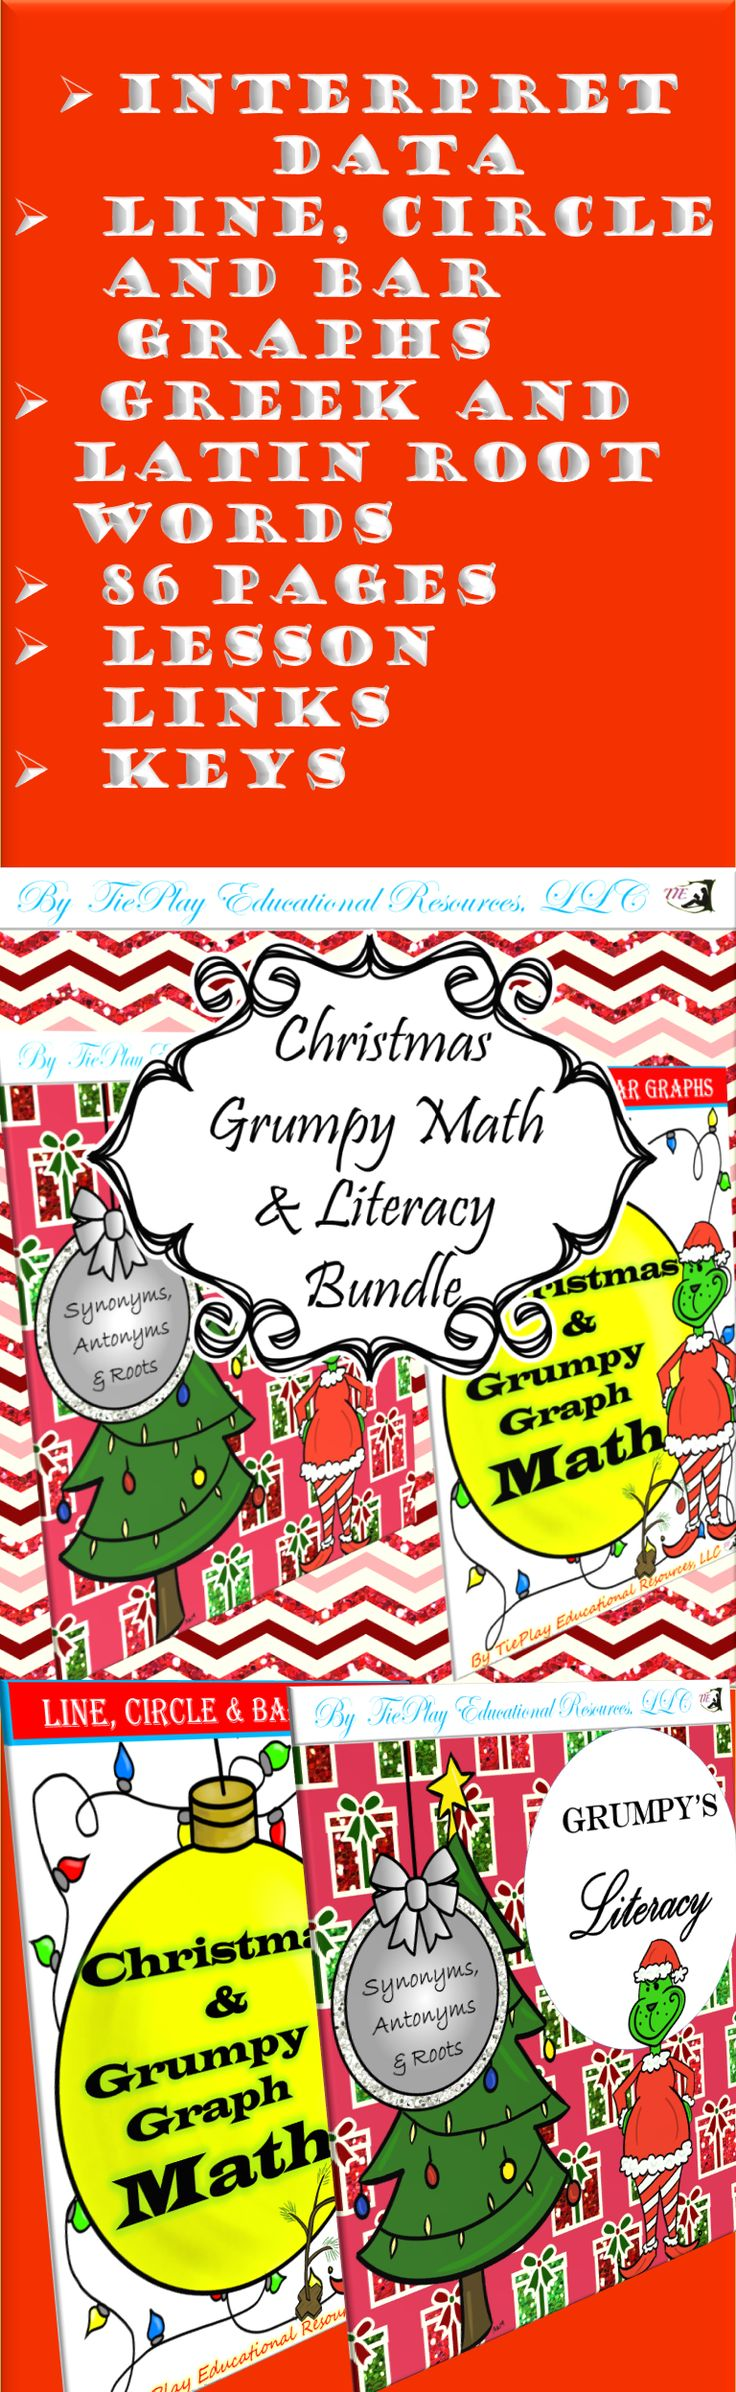 Price $10.00 Grumble, grumble grumble...It's a grumpy money saving bundle of 86 pages! Christmas and Grumpy Math Literacy Bundle involves fun with Greek and Latin academic words, and interpretation of line, circle and bar graph data.